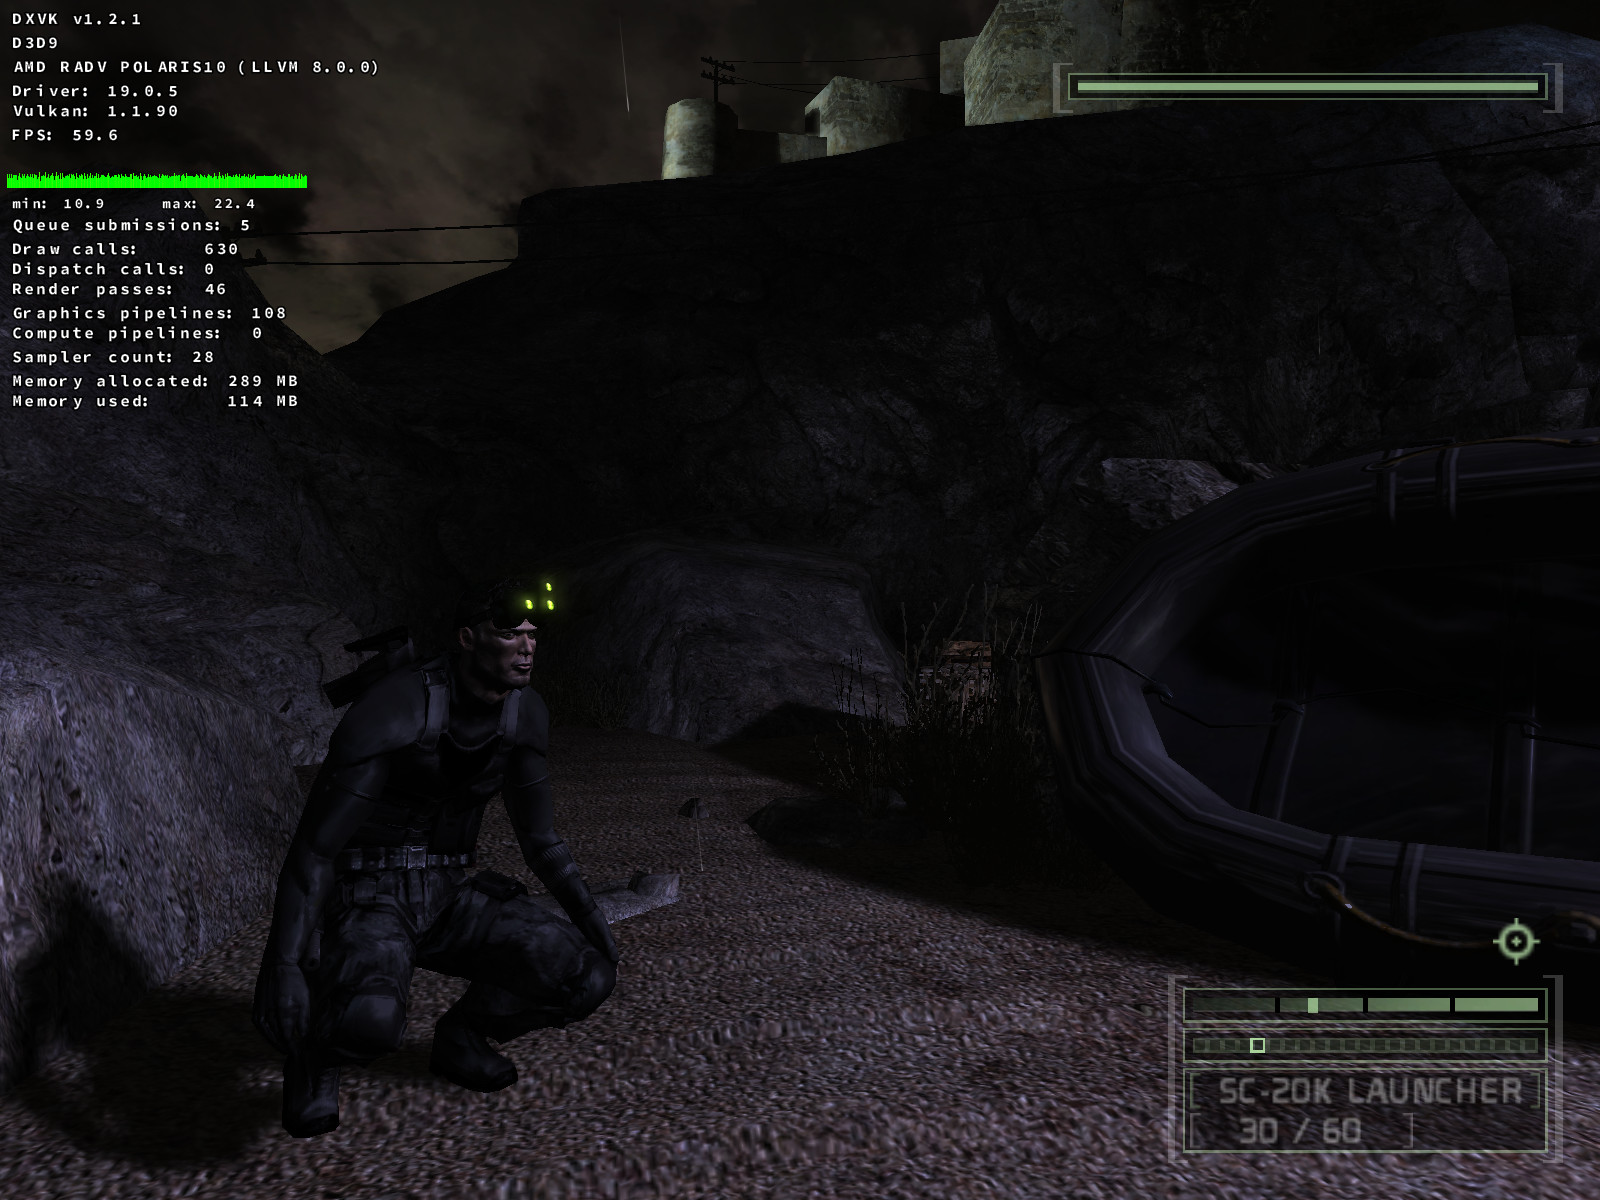 Splinter Cell Chaos Theory Unrerndered Sound Still On Issue